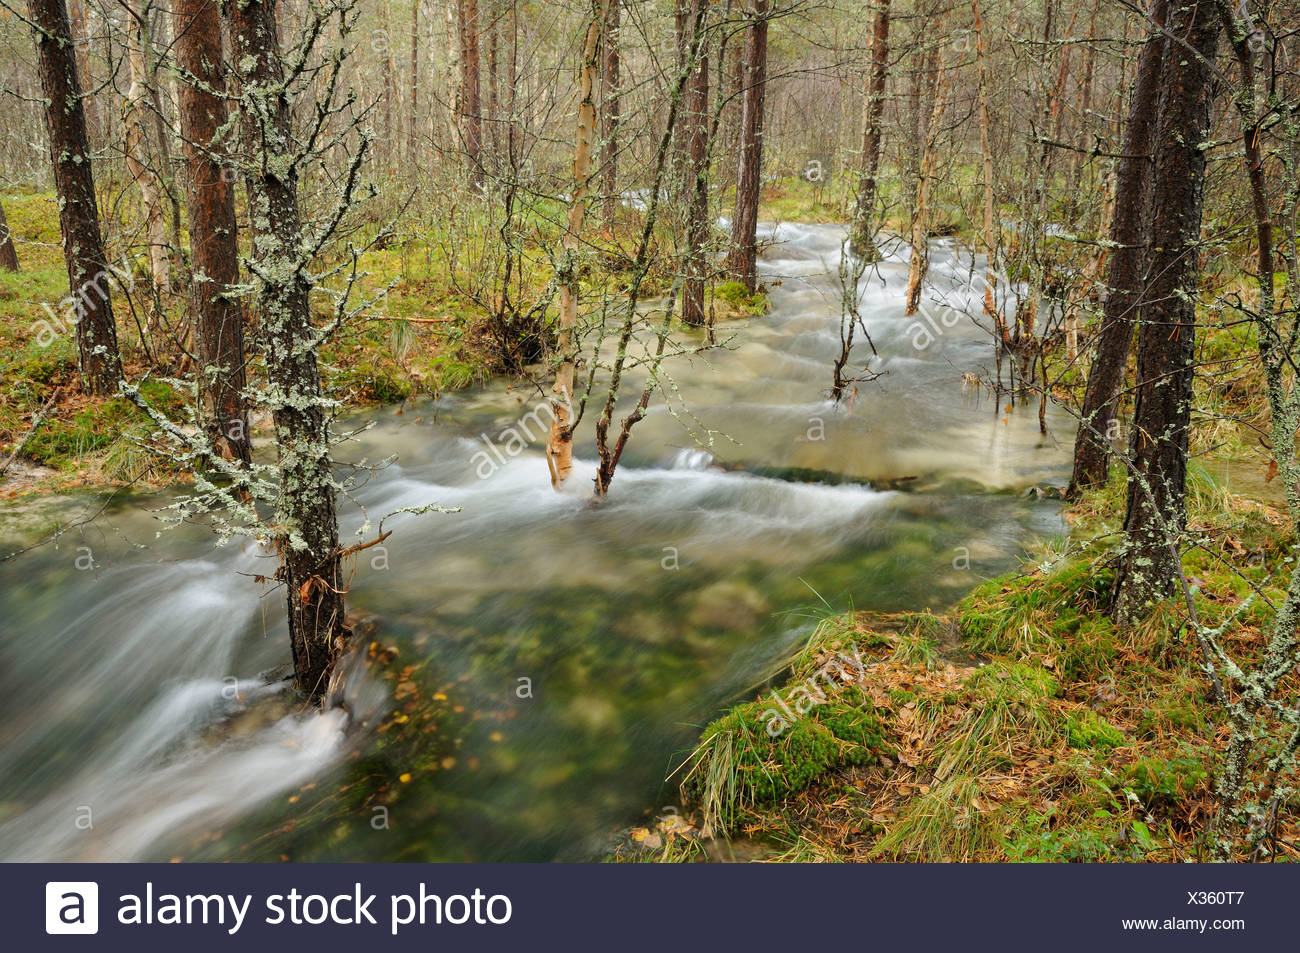 Floodwater in the forest near Straumbu, Rondane National Park, Norway, Scandinavia, Europe Stock Photo